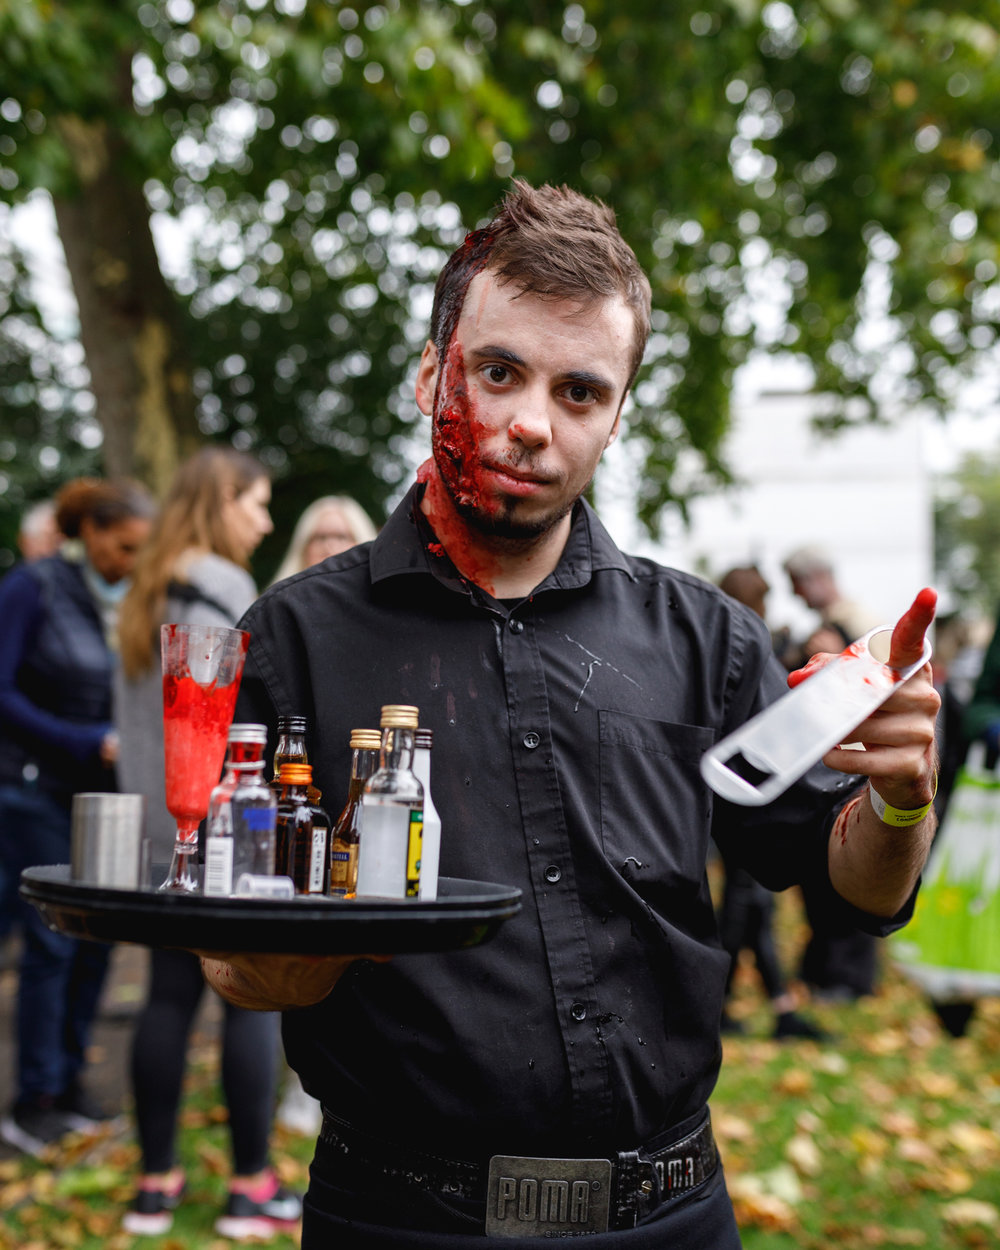 Occipitals_World_Zombie_Day_London_12